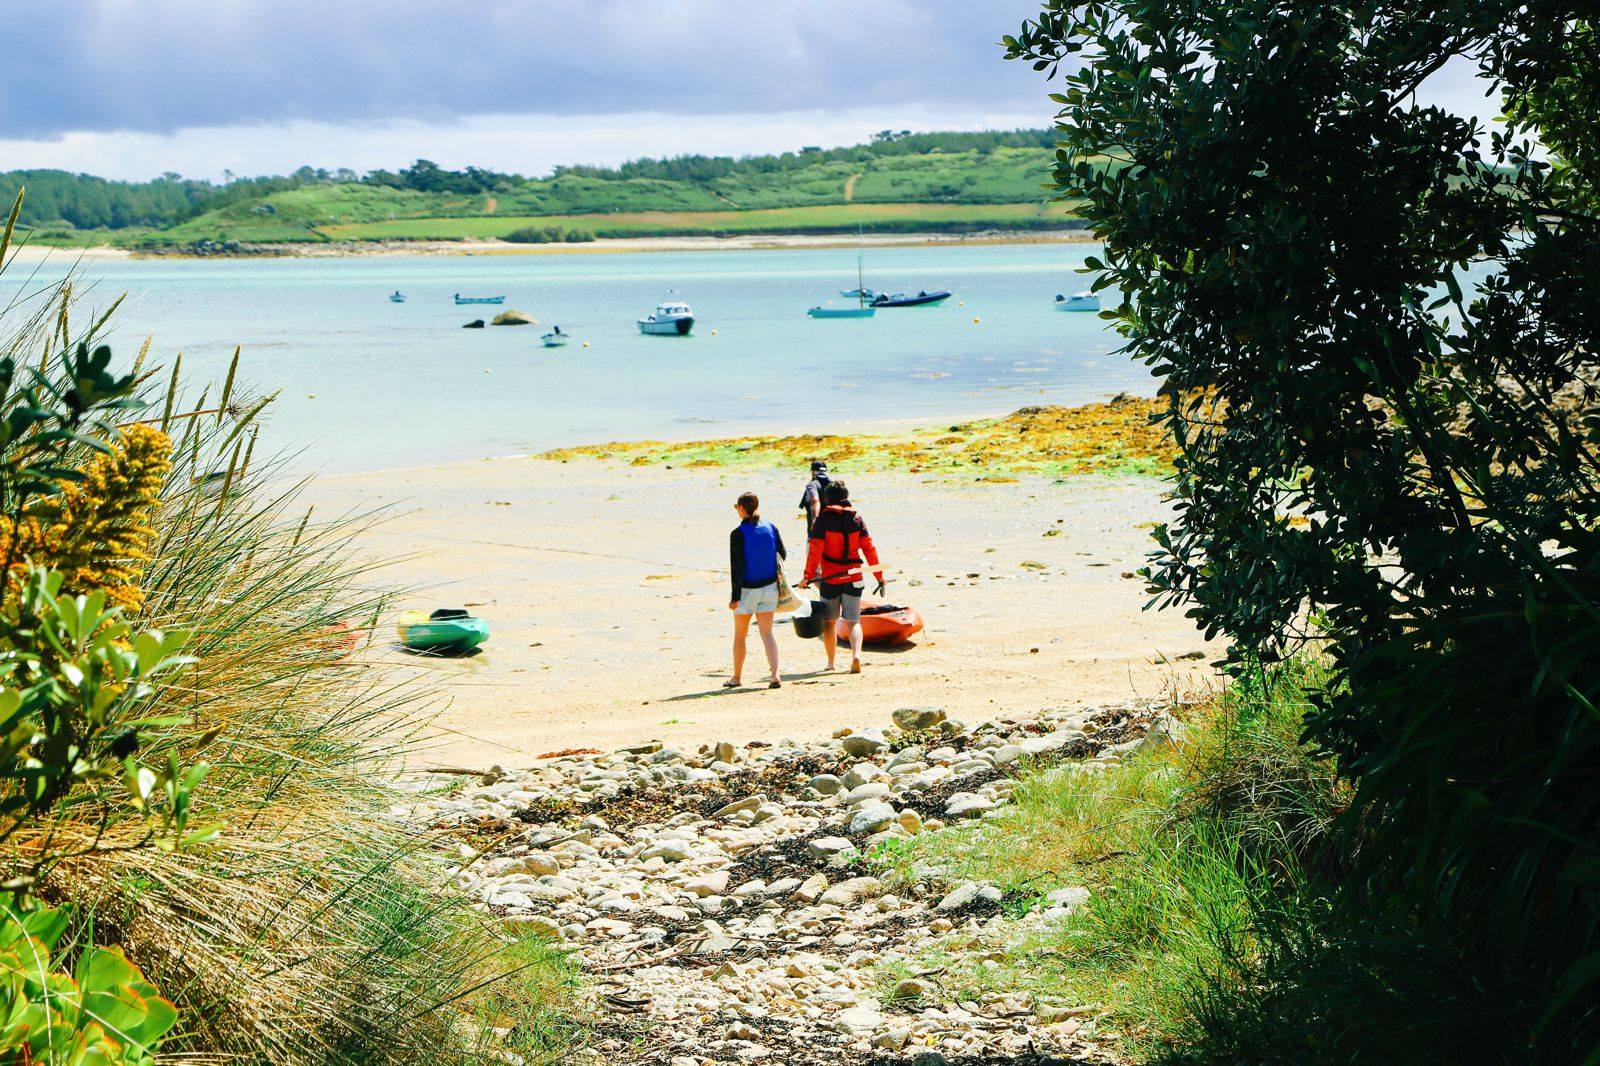 Kayaking in Bryher, Honesty Boxes and Tropical Island Hues... In Bryher Island, Isles of Scilly, UK (15)